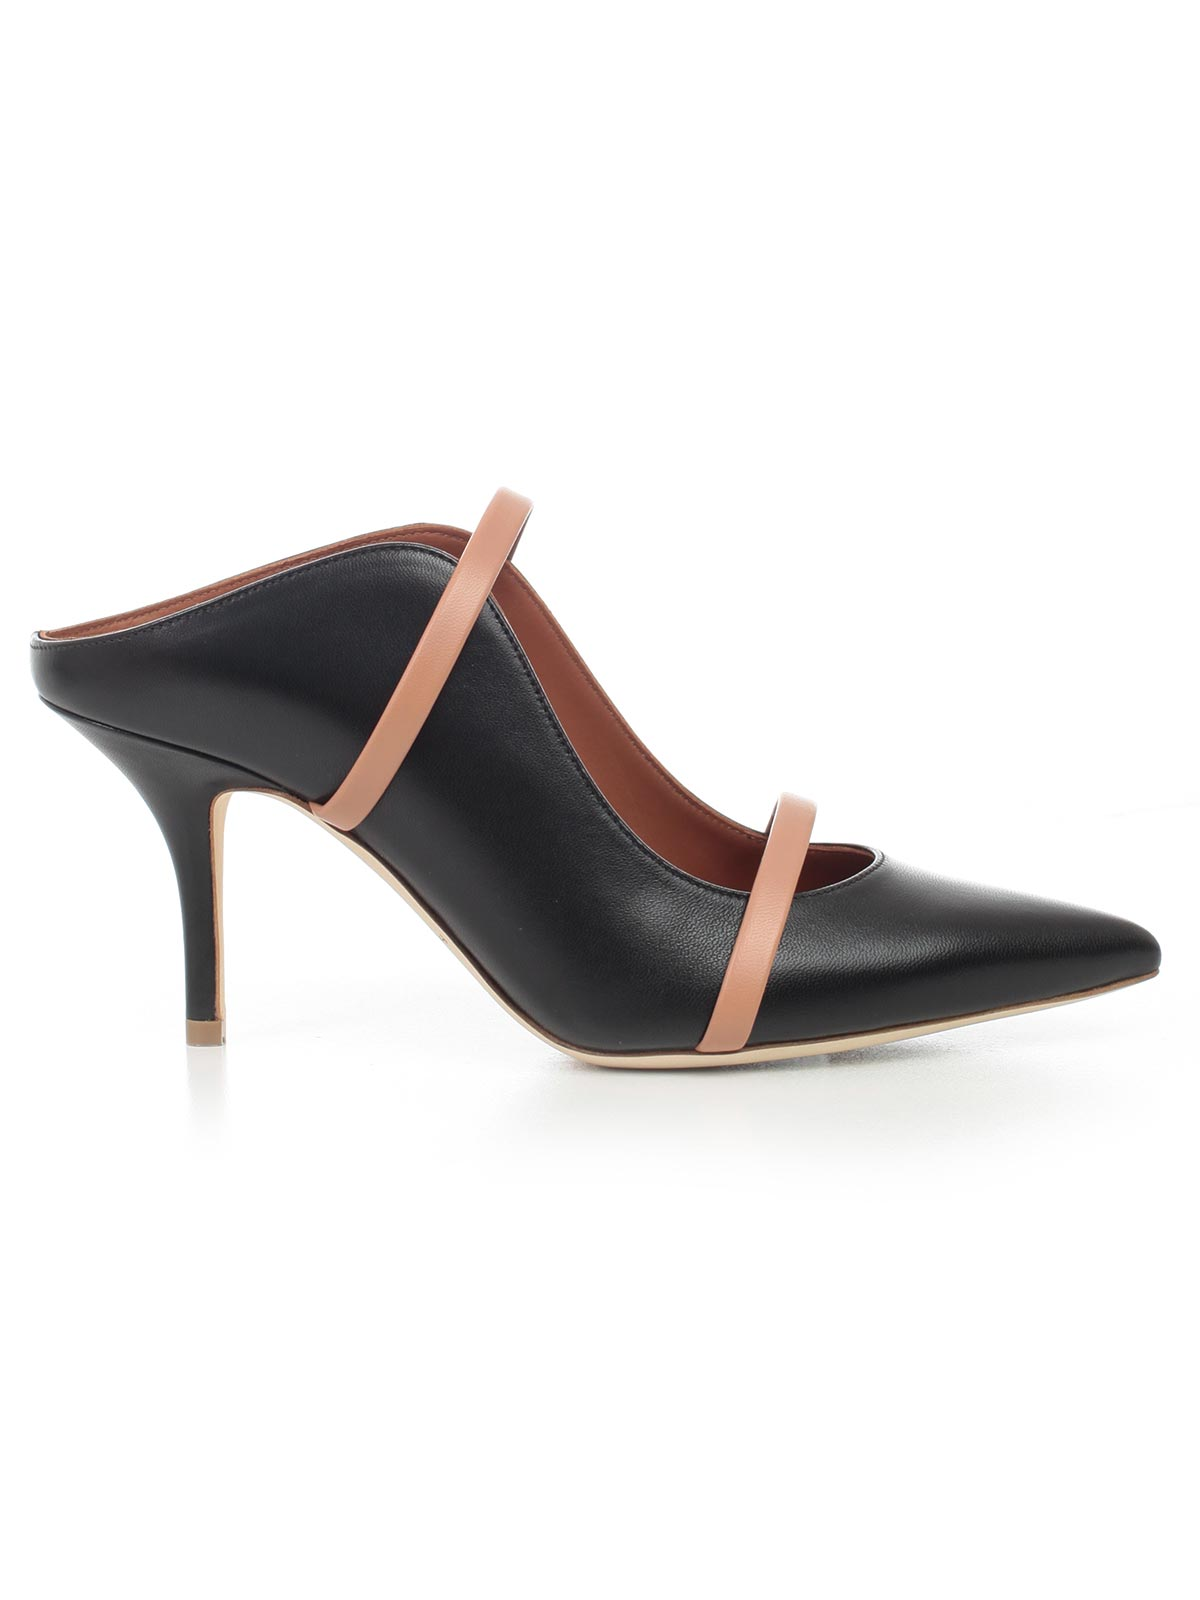 Malone Souliers online discount shoes, Malone souliers